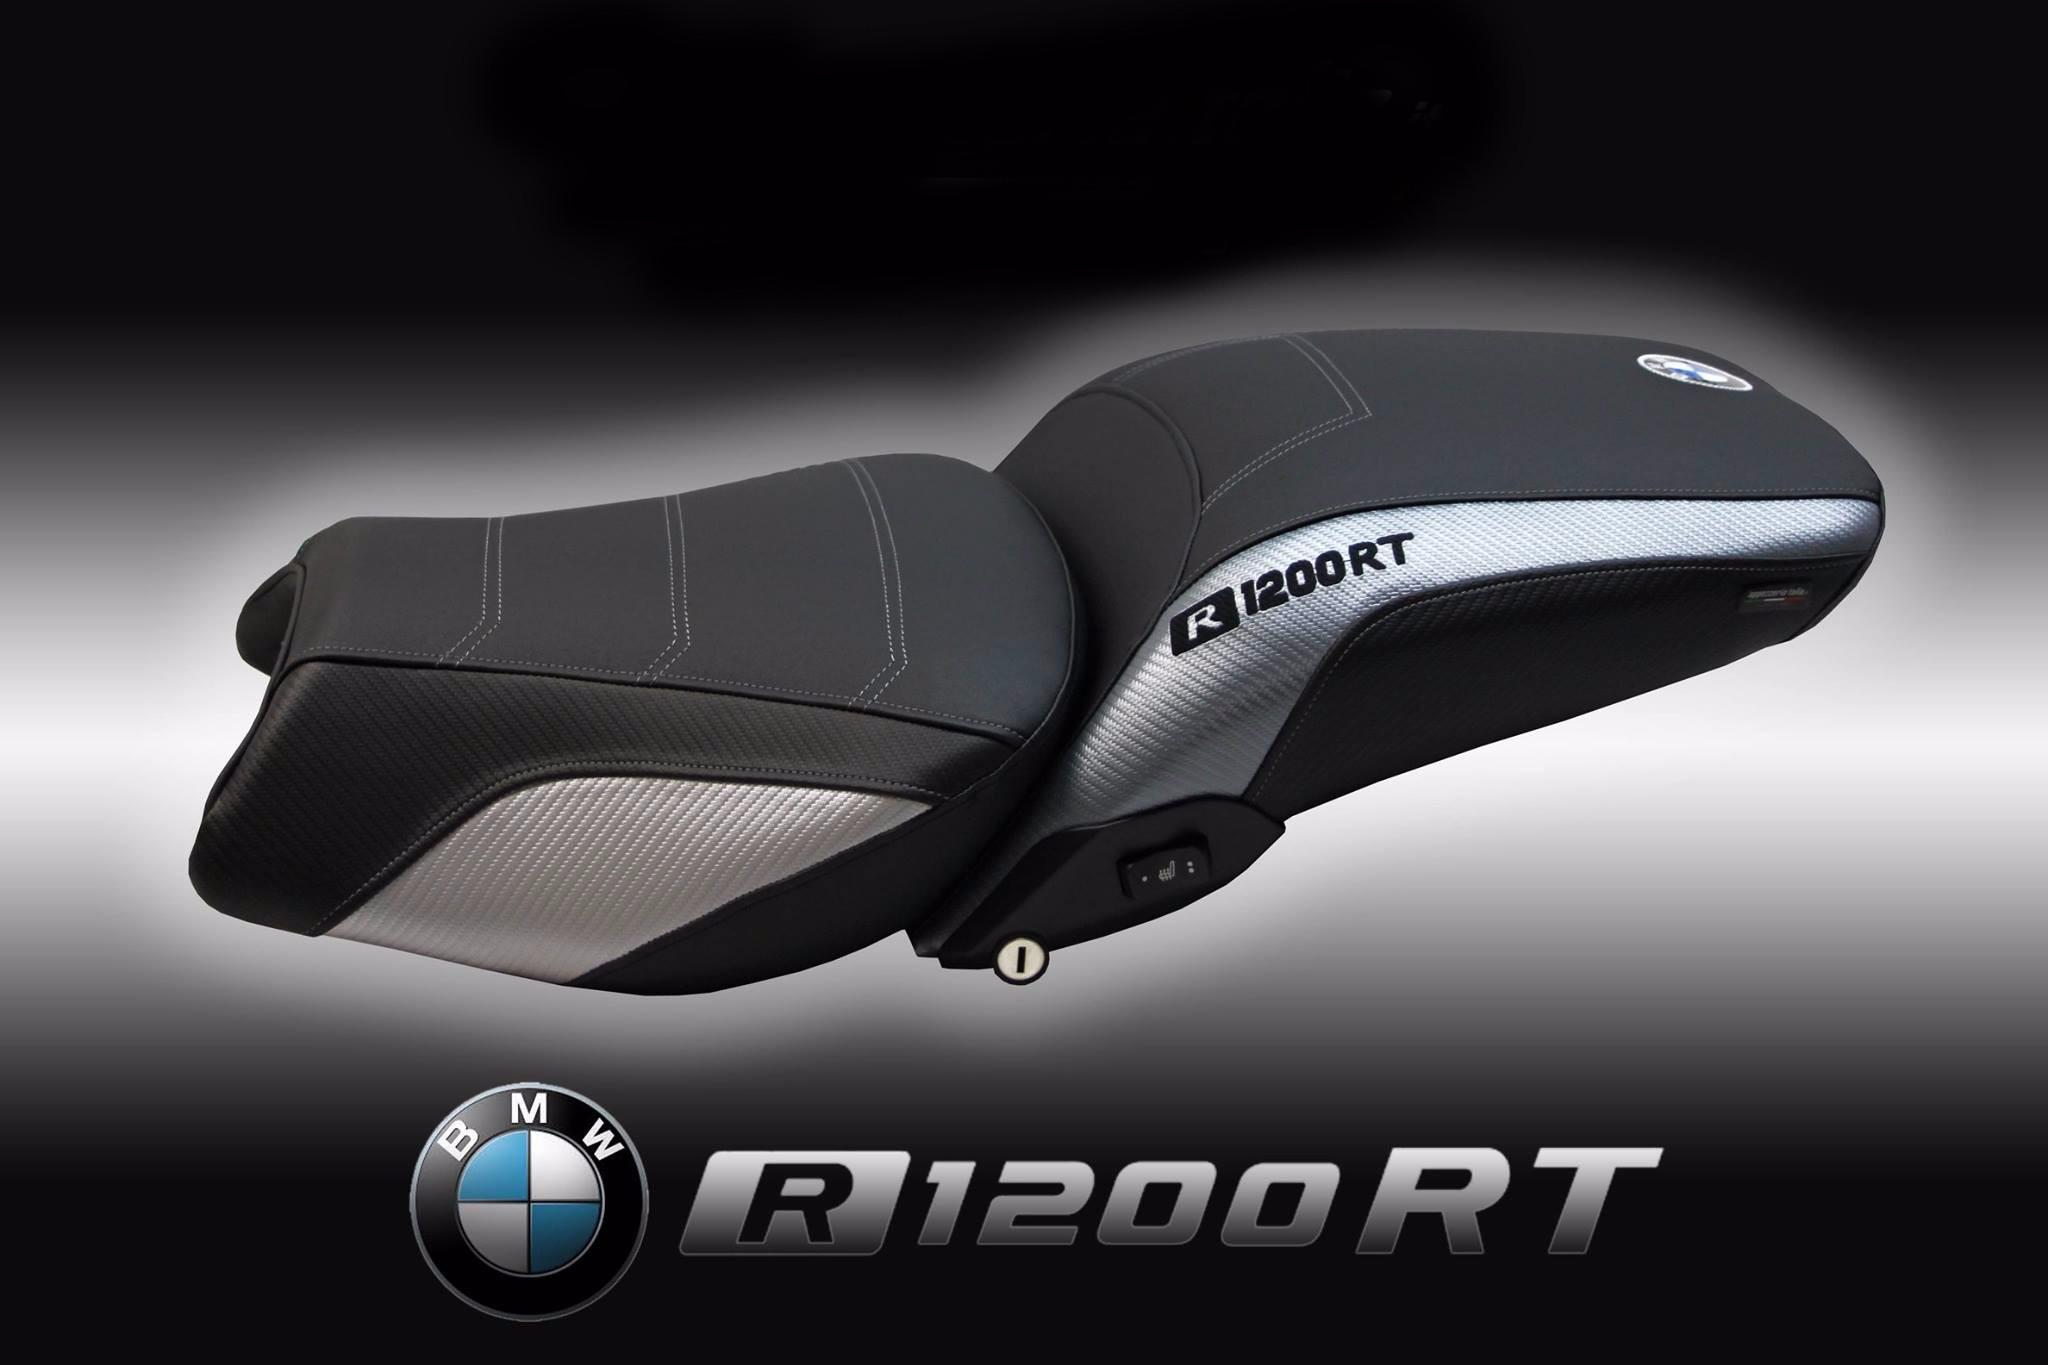 Details About Bmw R1200 Rt 2014 2018 Tappezzeria Italia Comfort Foam Seat Cover New